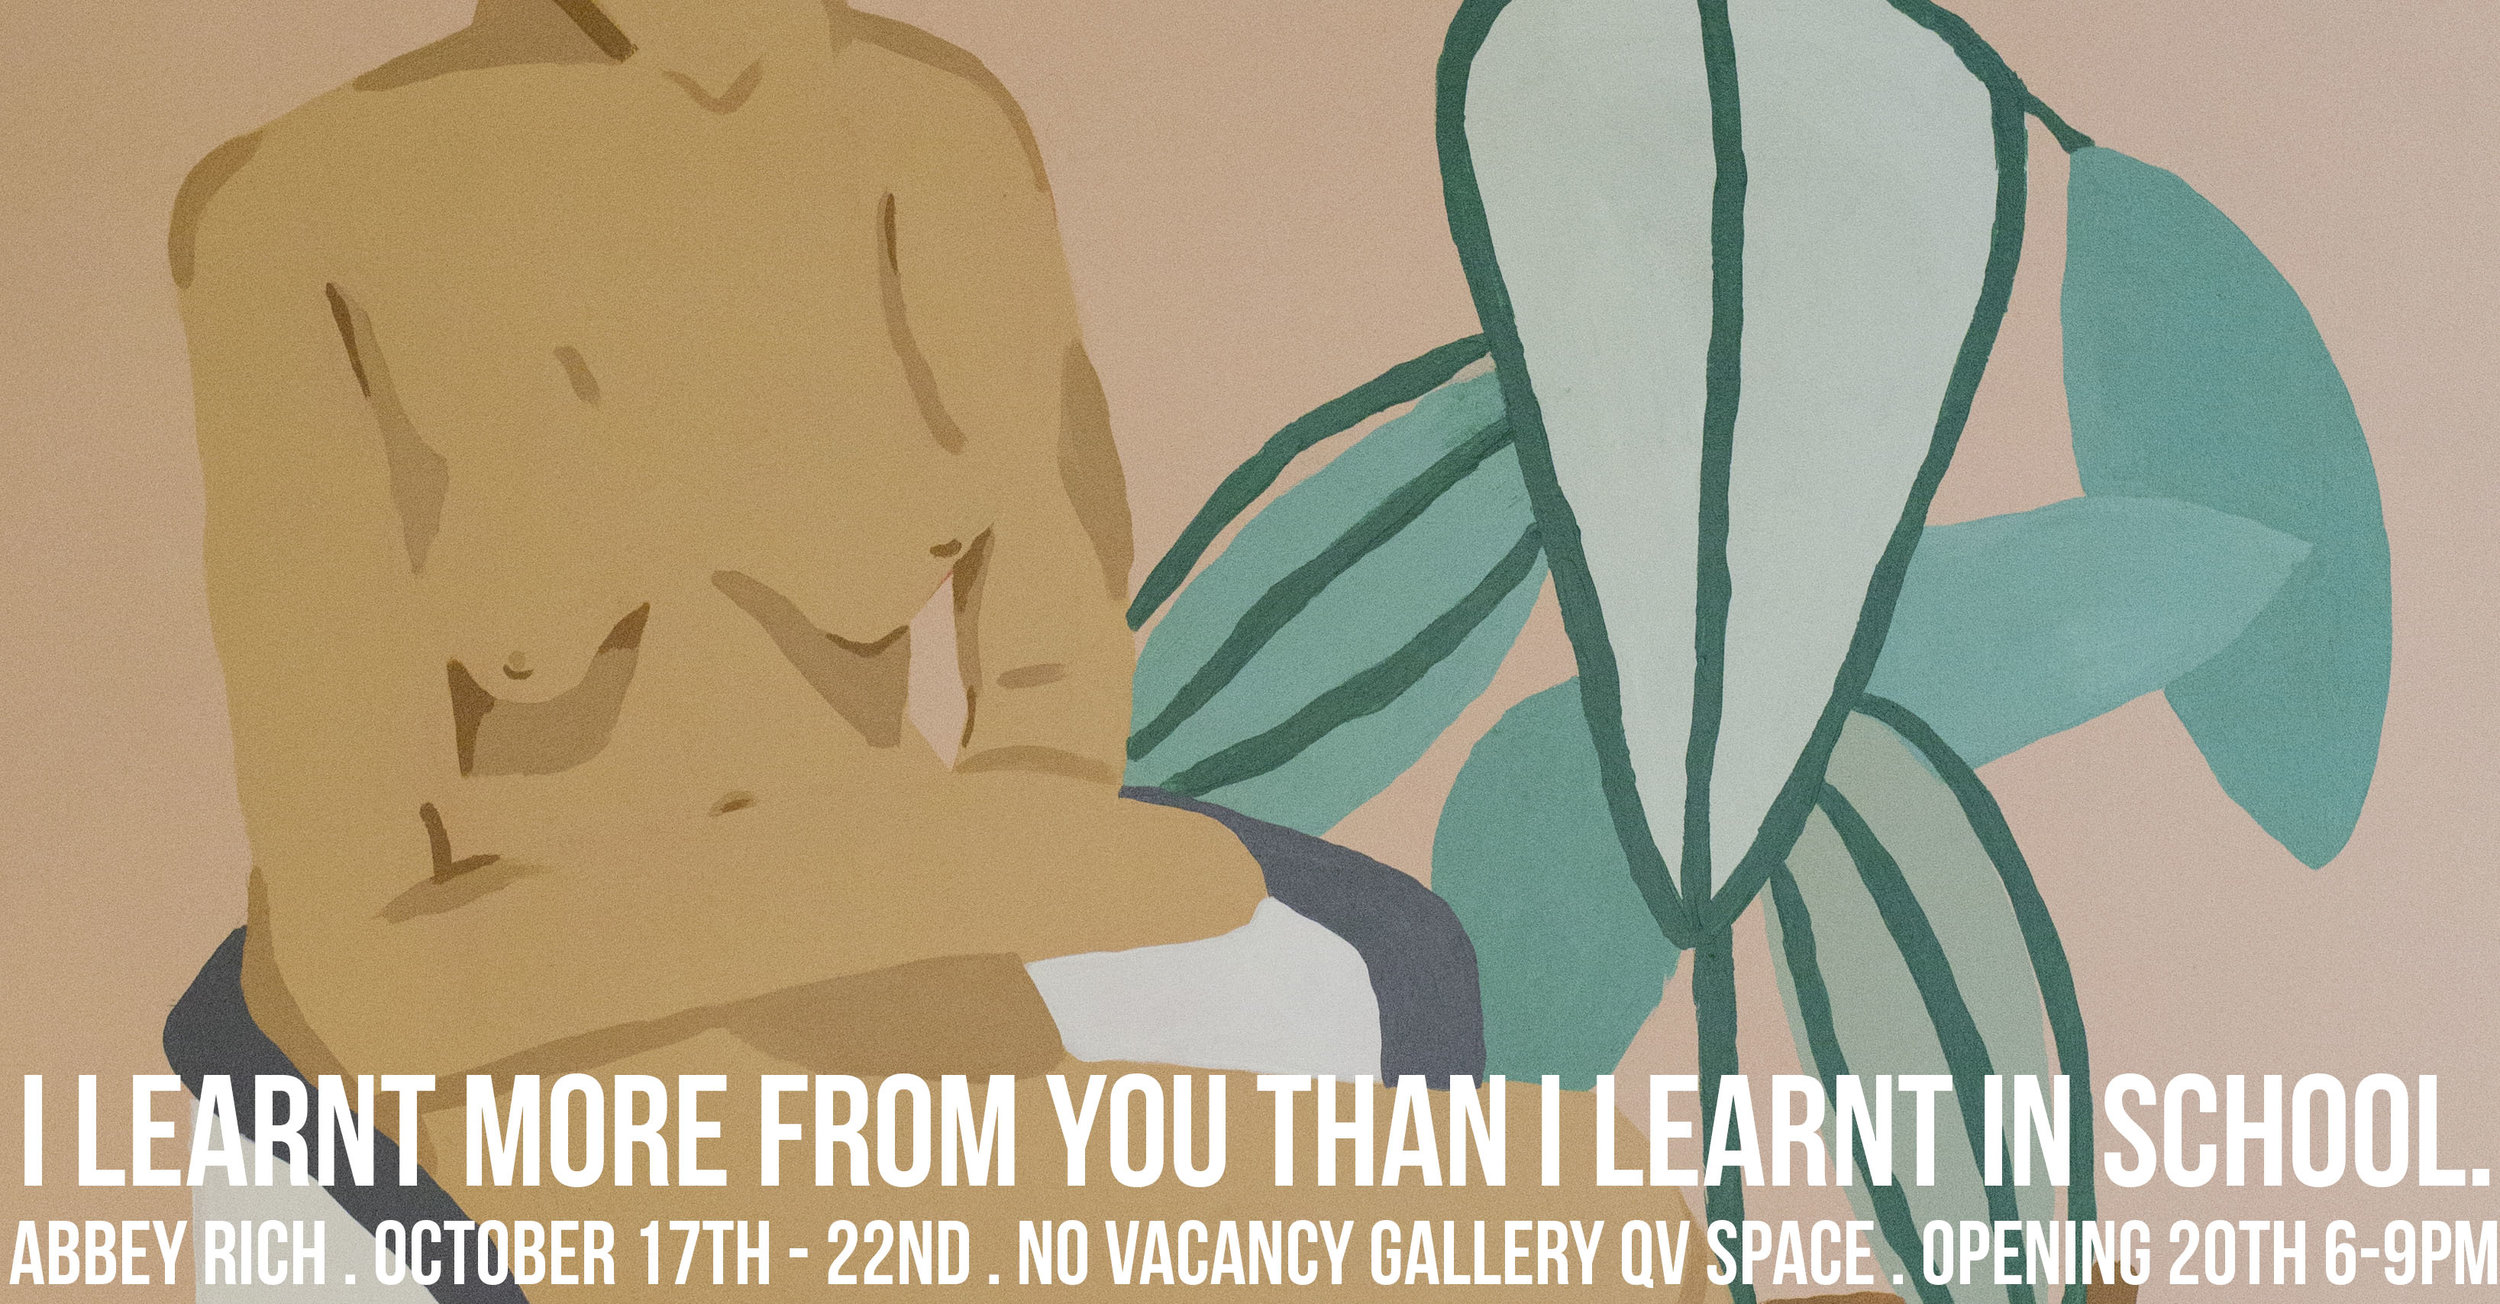 solo exhibition // october 2017 - No Vacancy Gallery QV - MelbourneFive years after graduating from high school, Abbey Rich presents a body of work focusing on the skills and lessons she has learnt from the people around her. In an attempt to unlearn the negative things Abbey learnt in high school this work aims to discuss how we as human beings all learn differently and how important the people in our lives are.Presenting works made collaboratively and alone, such as paintings and drawings on paper, board and found objects,I Learnt More From You than I Learnt in Schoolcelebrates education in a non-traditional way and the knowledge of those around you.Abbey Rich is known for her handmade, bold works on paper, the body and cloth. Running a small, made to order clothing label, studying at university, painting murals, freelancing and exhibiting, Abbey spreads her work across many mediums.